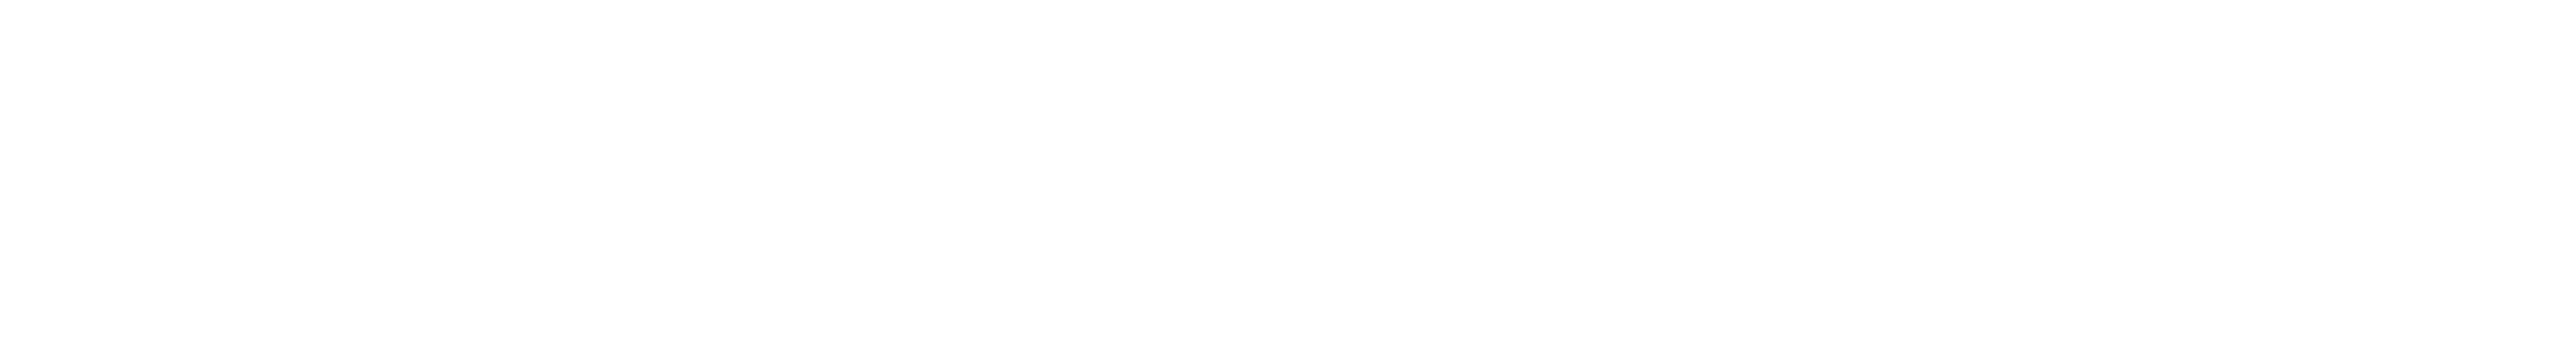 Accurate Outdoor Solutions | Naples, Fort Myers, Bonita Springs